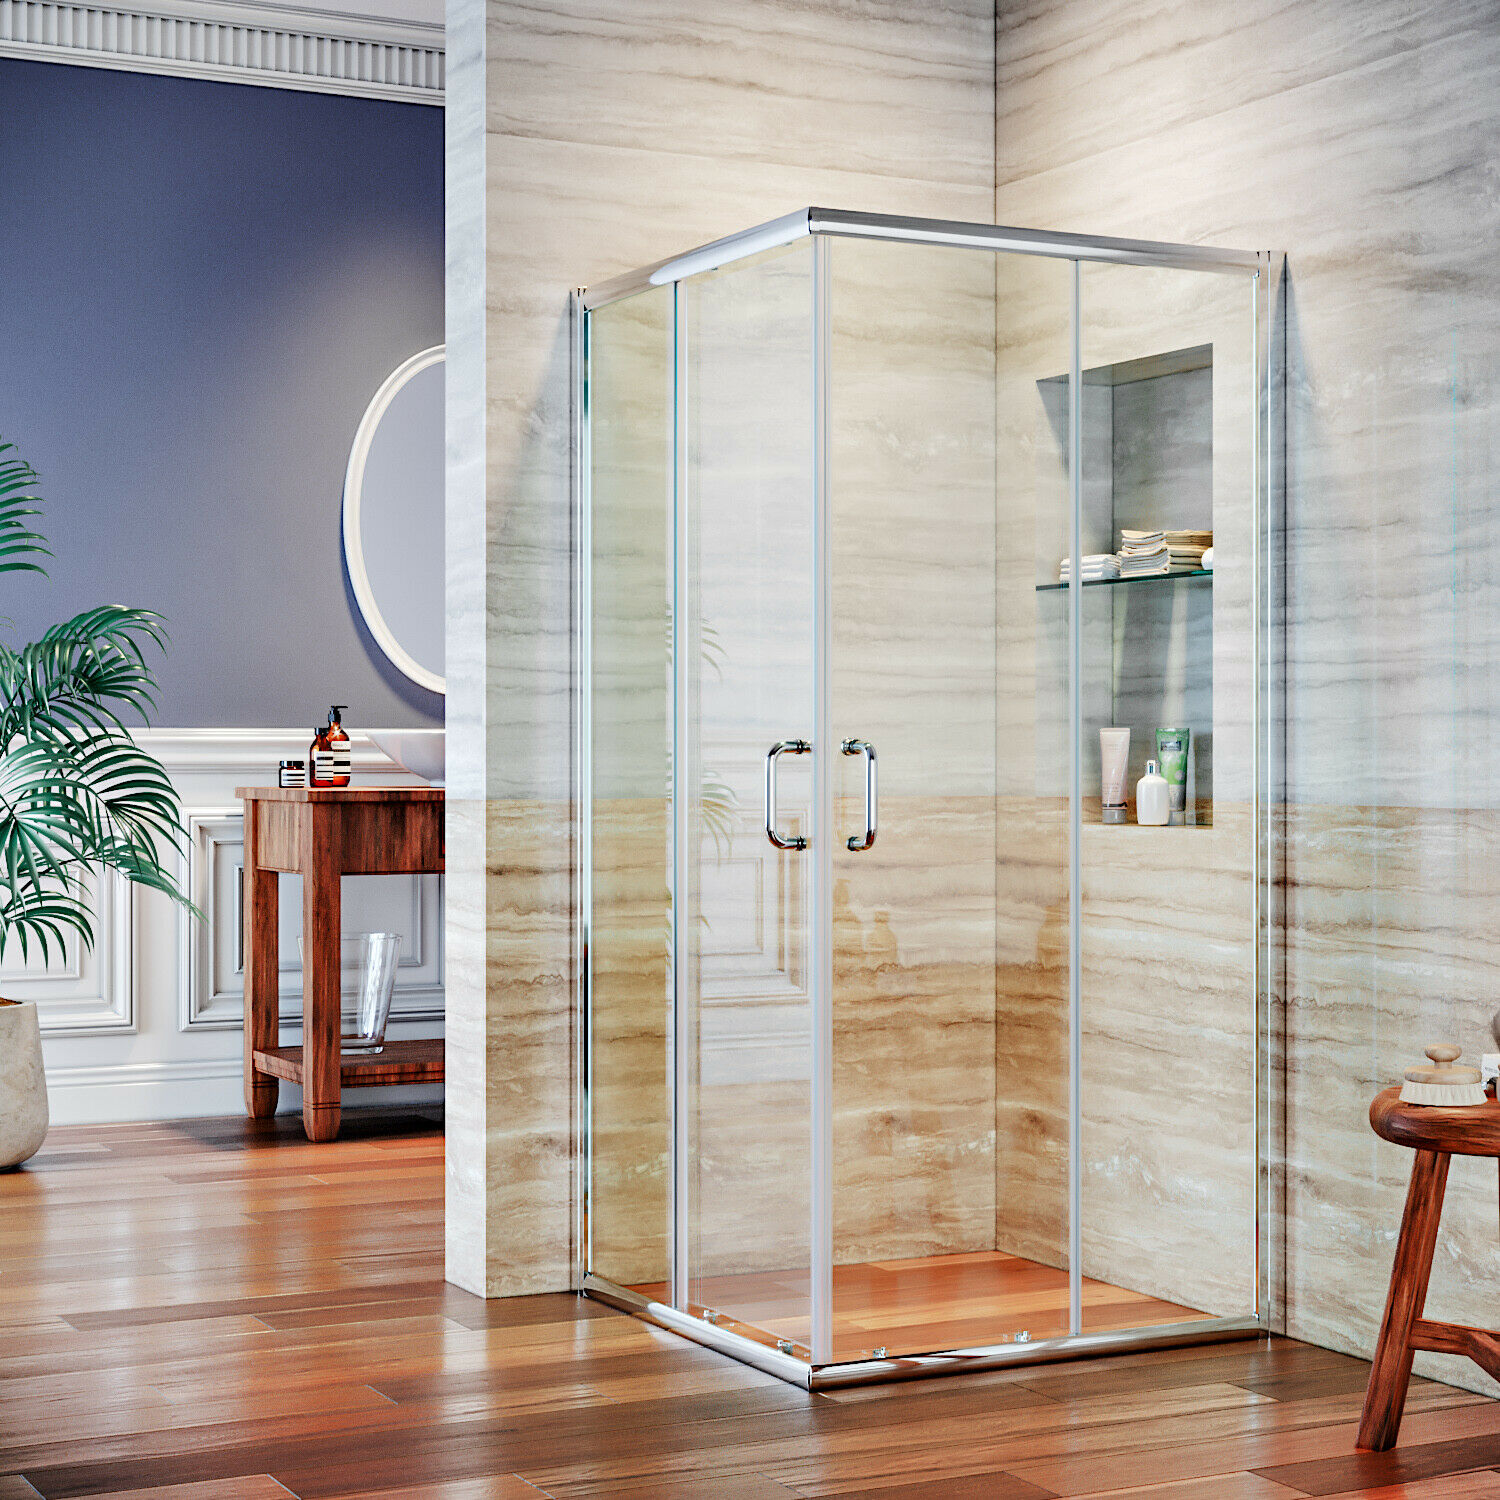 ELEGANT Semi Framed Bathroom Shower Sliding Glass Door Corne